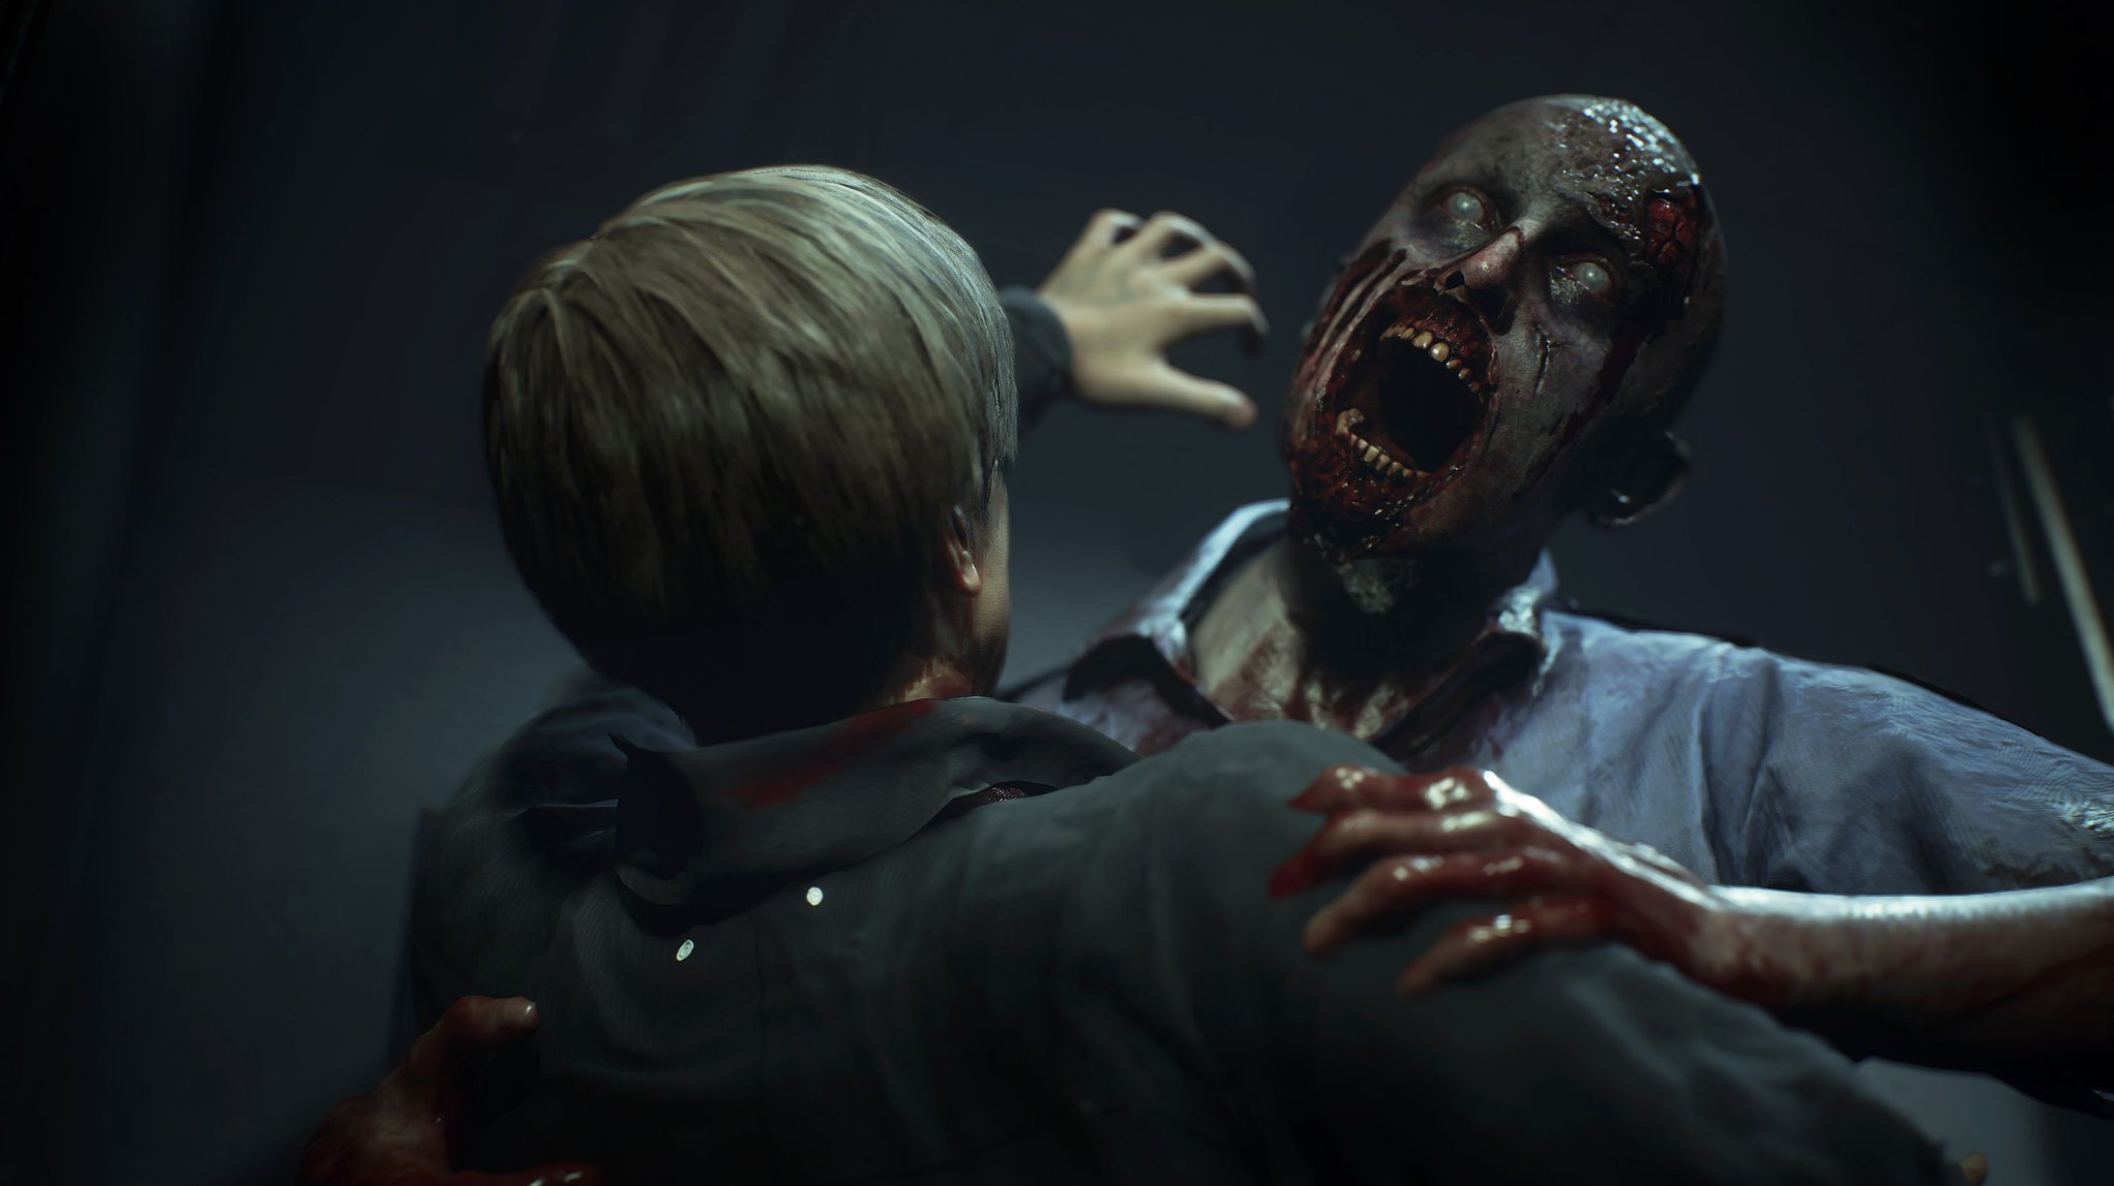 Seeing The Resident Evil 2 Remake In Action Soothes My Sceptical Heart